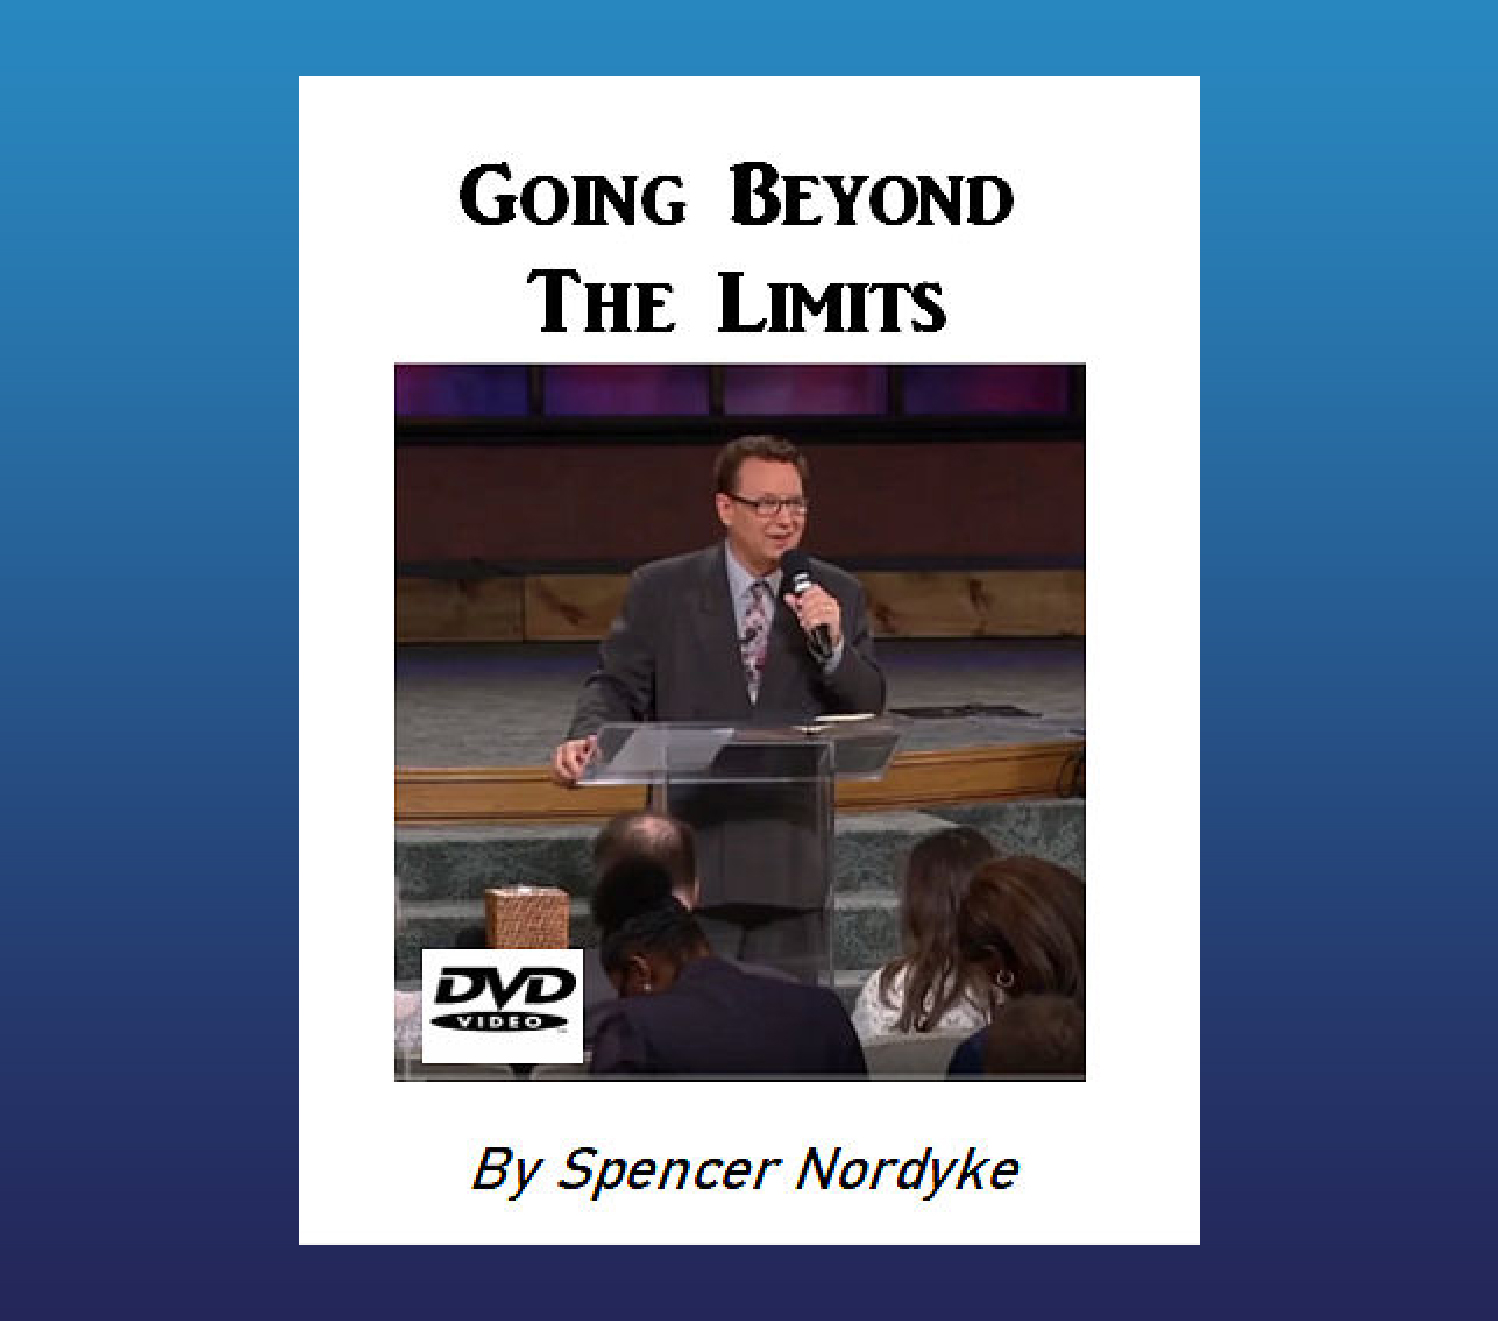 Going Beyond The Limits DVD